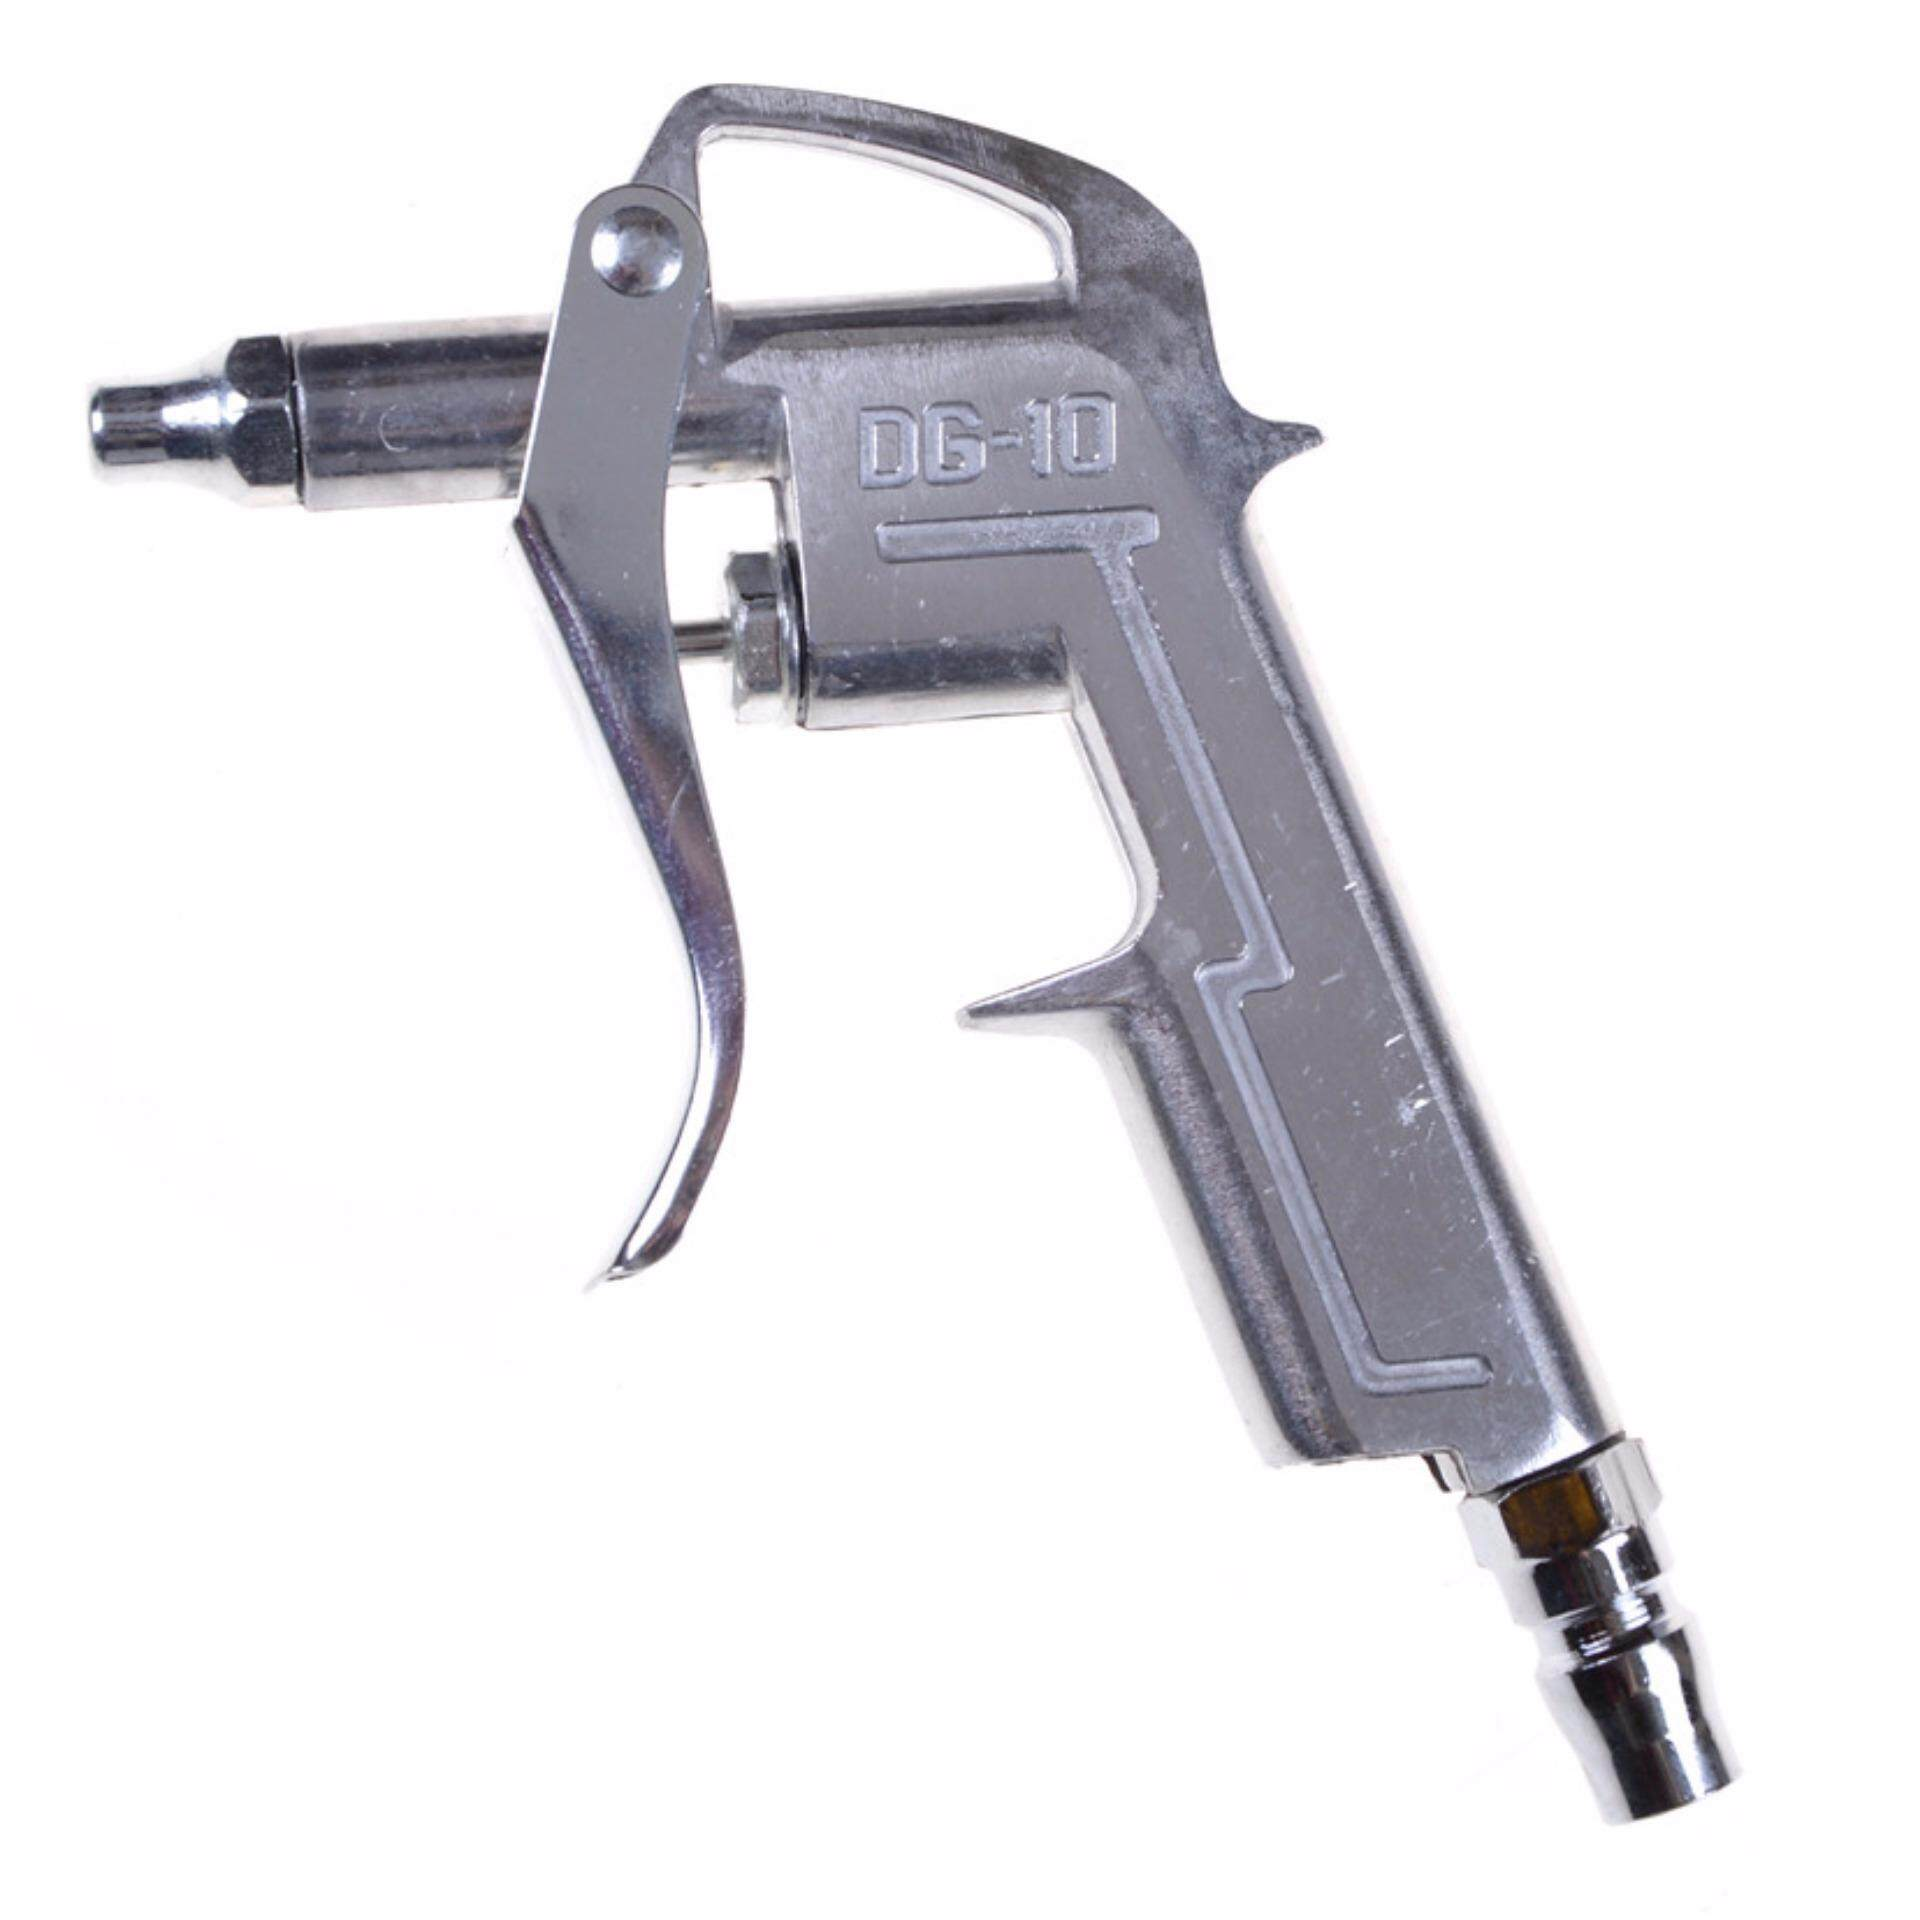 Air Duster Compressor Dust Removing Gun Blow Blower Cleaning Clean Handy Pistol